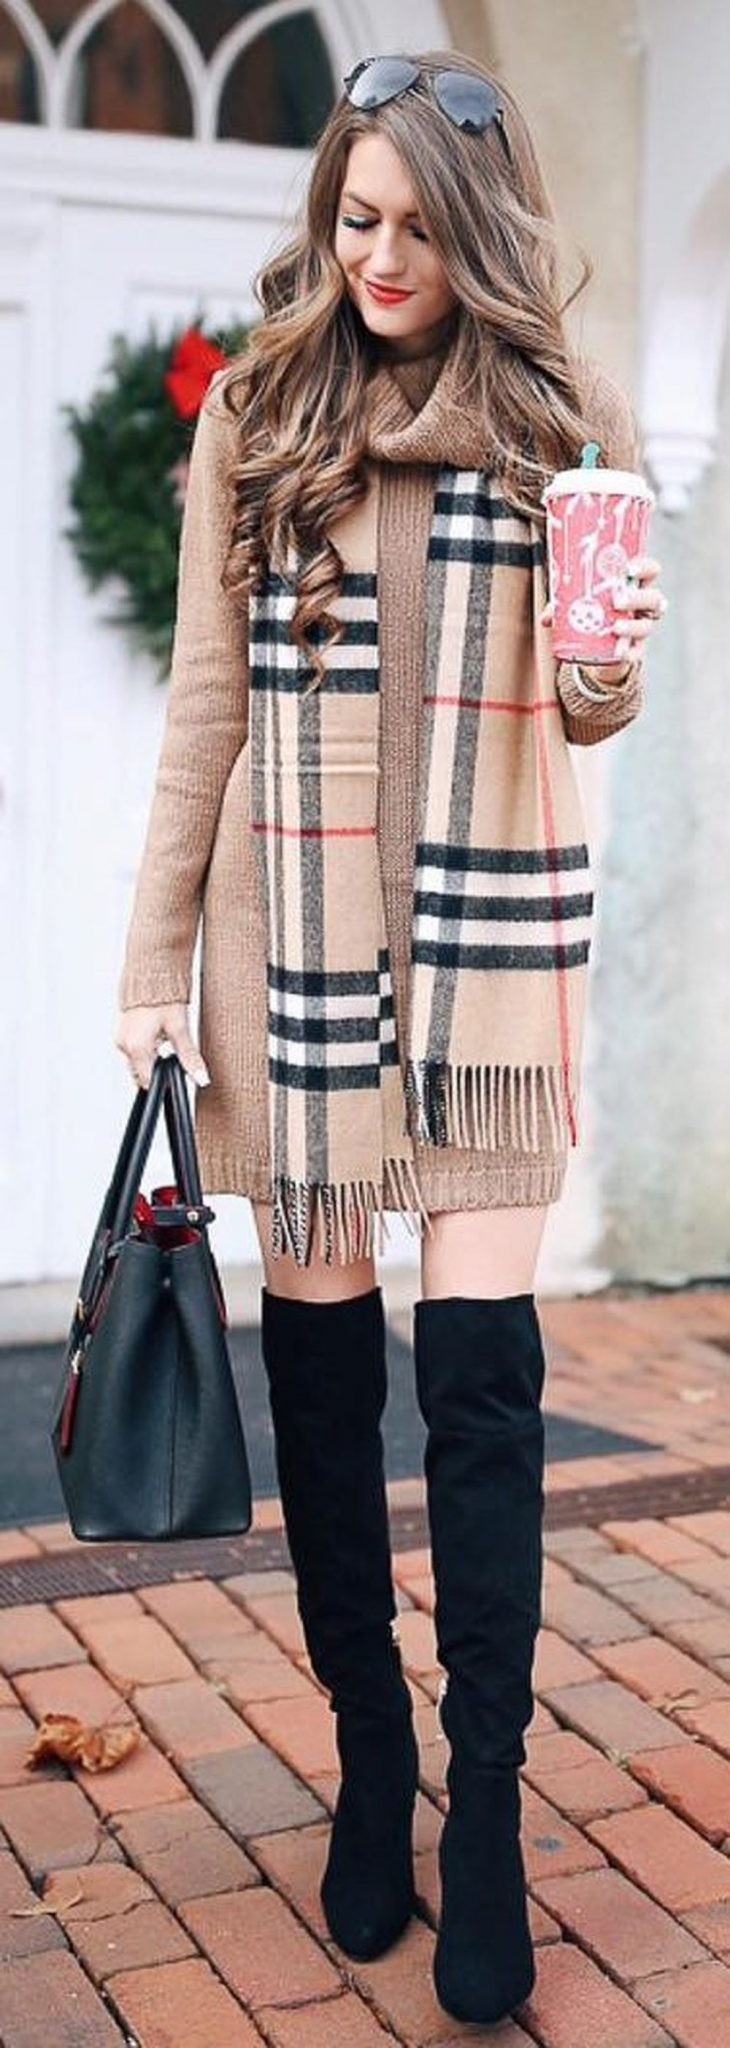 63 Winter Outfit Ideas From New York Fashion Week Fall: Fashionable Scarves For Winter Outfits 63